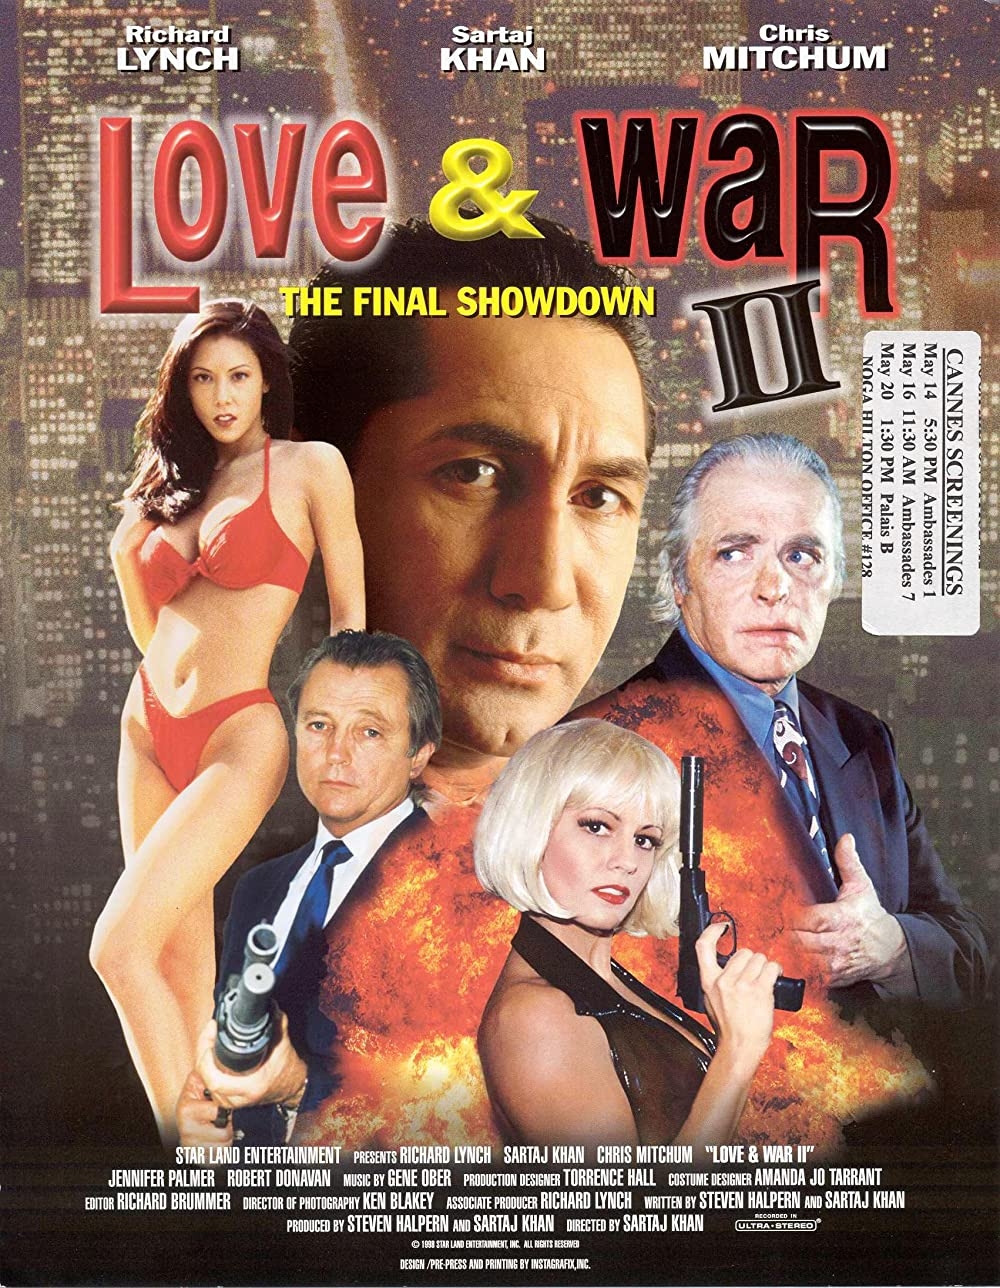 18+ Love and War II (1998) Hindi Dual Audio 720p UNRATED DVDRip 1.2GB